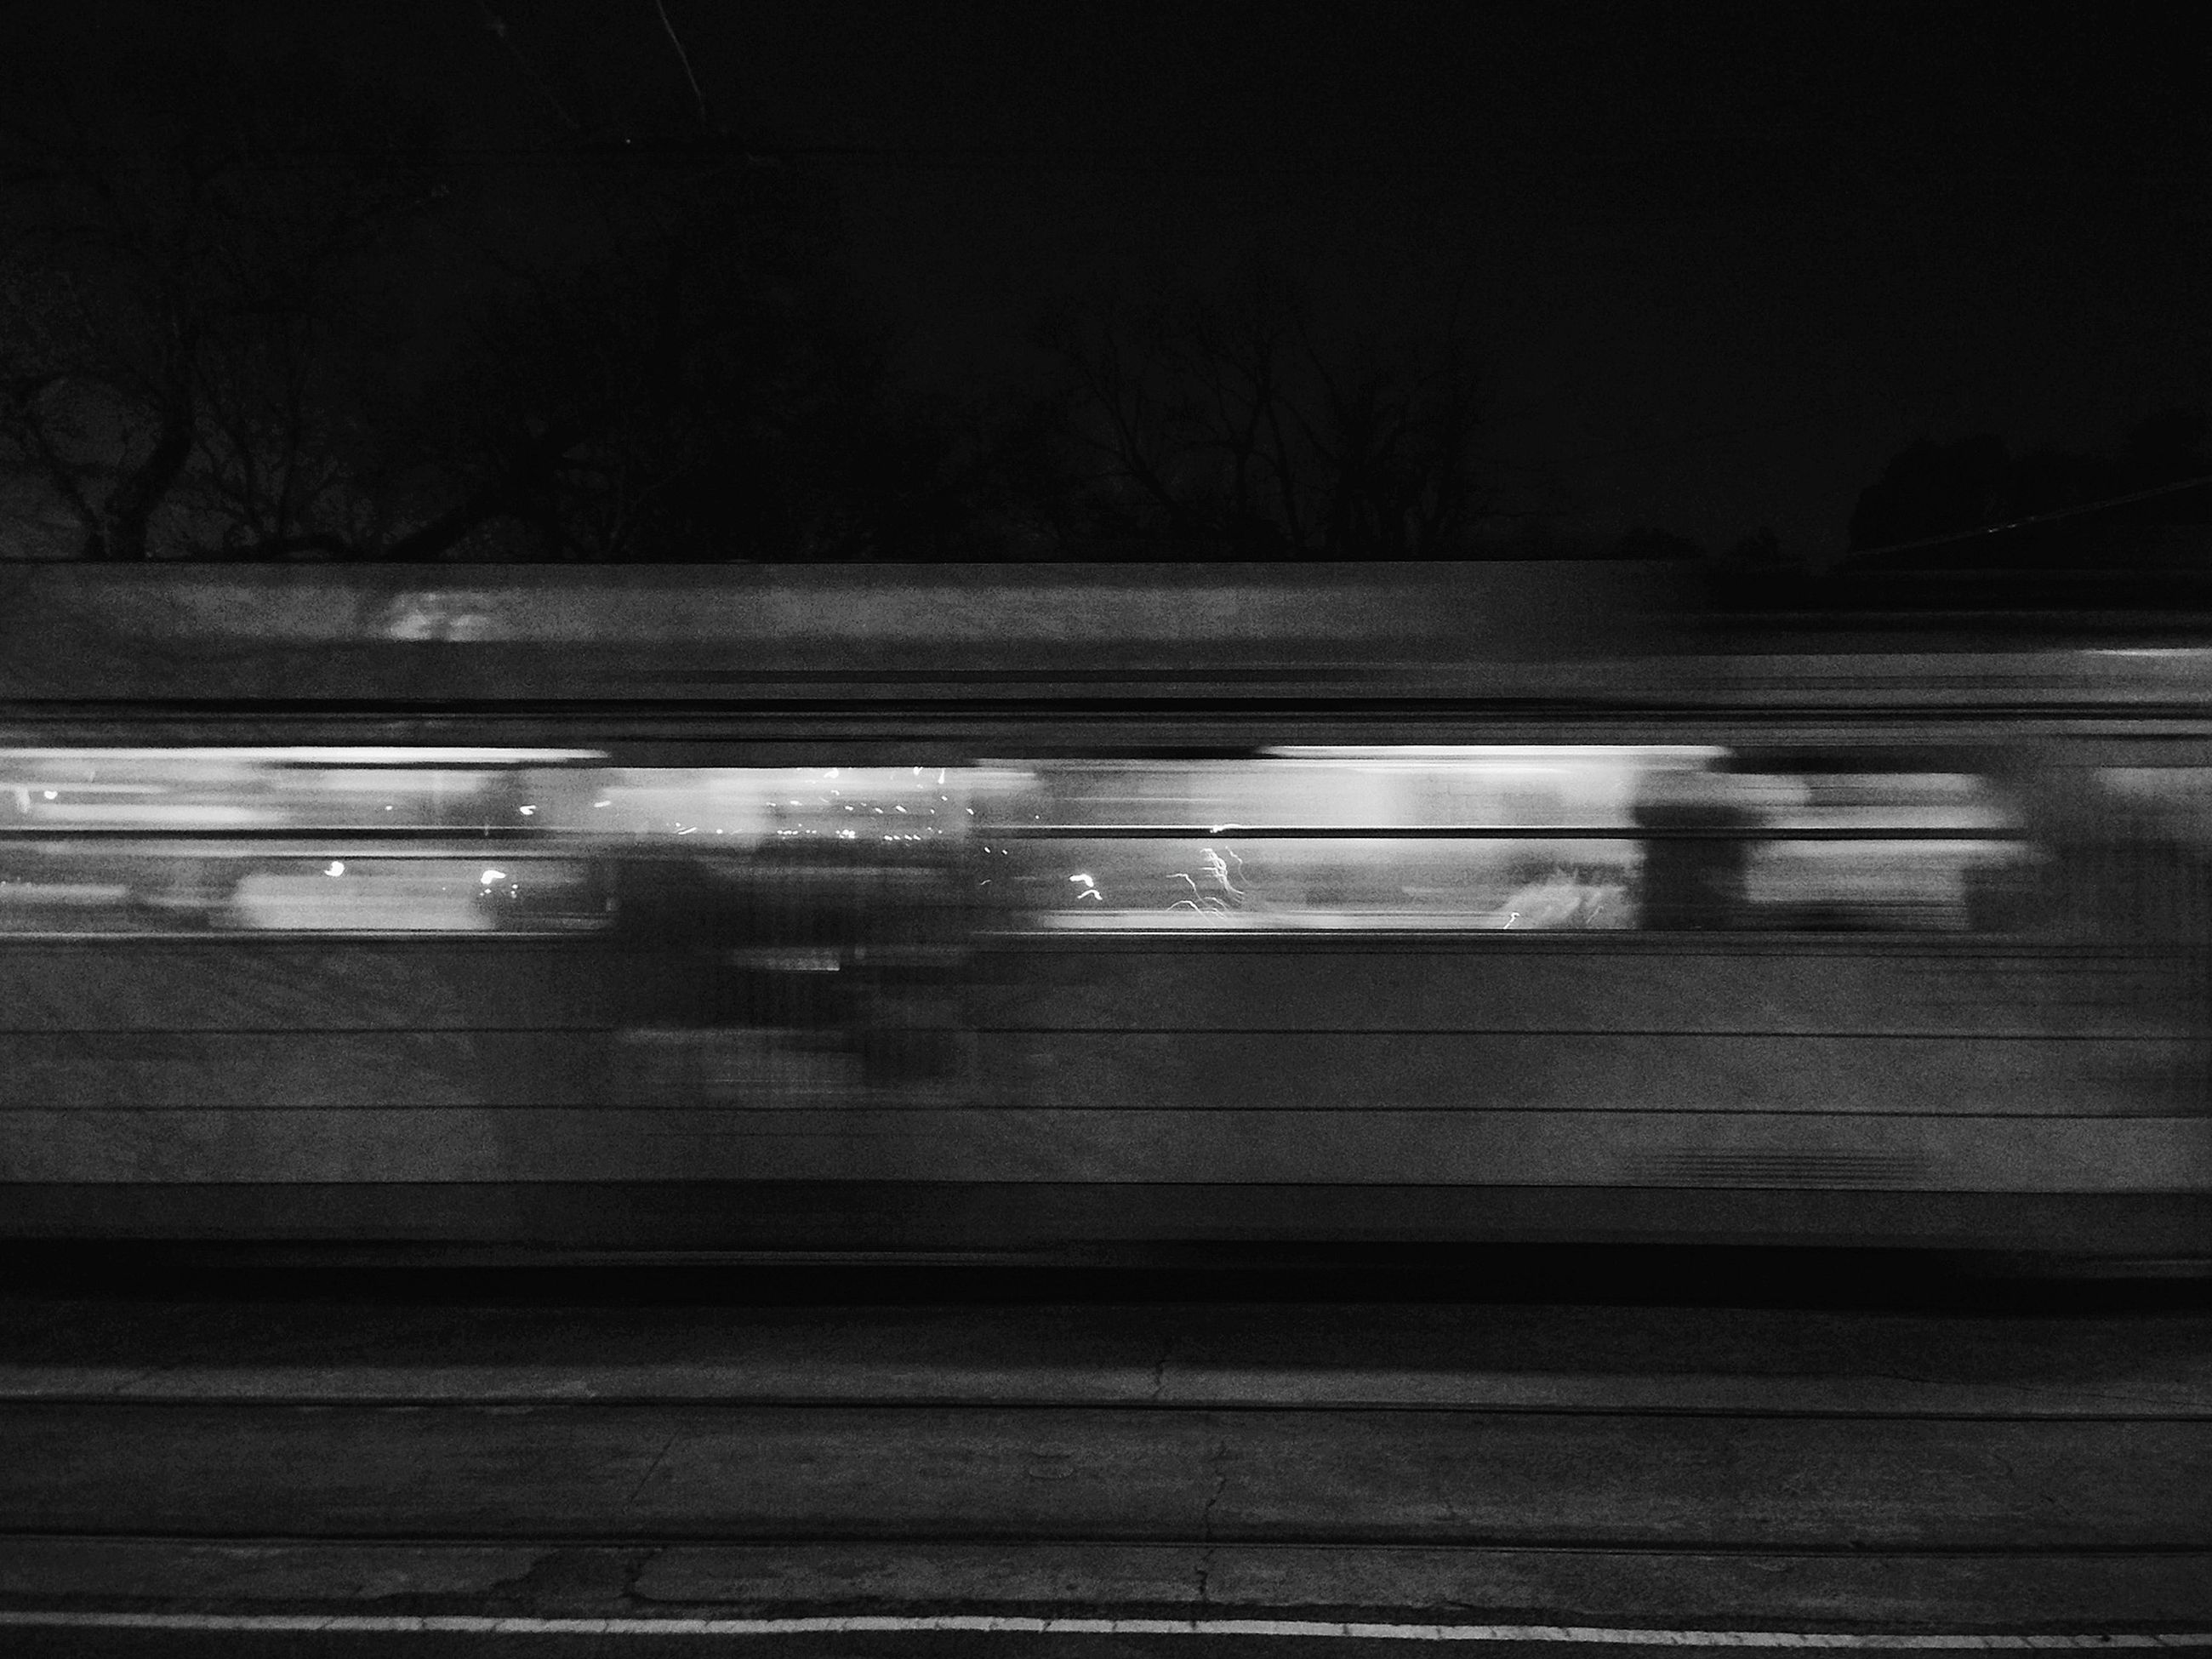 night, transportation, illuminated, railroad track, rail transportation, railroad station platform, railroad station, public transportation, mode of transport, dark, blurred motion, train - vehicle, street, motion, built structure, on the move, road, outdoors